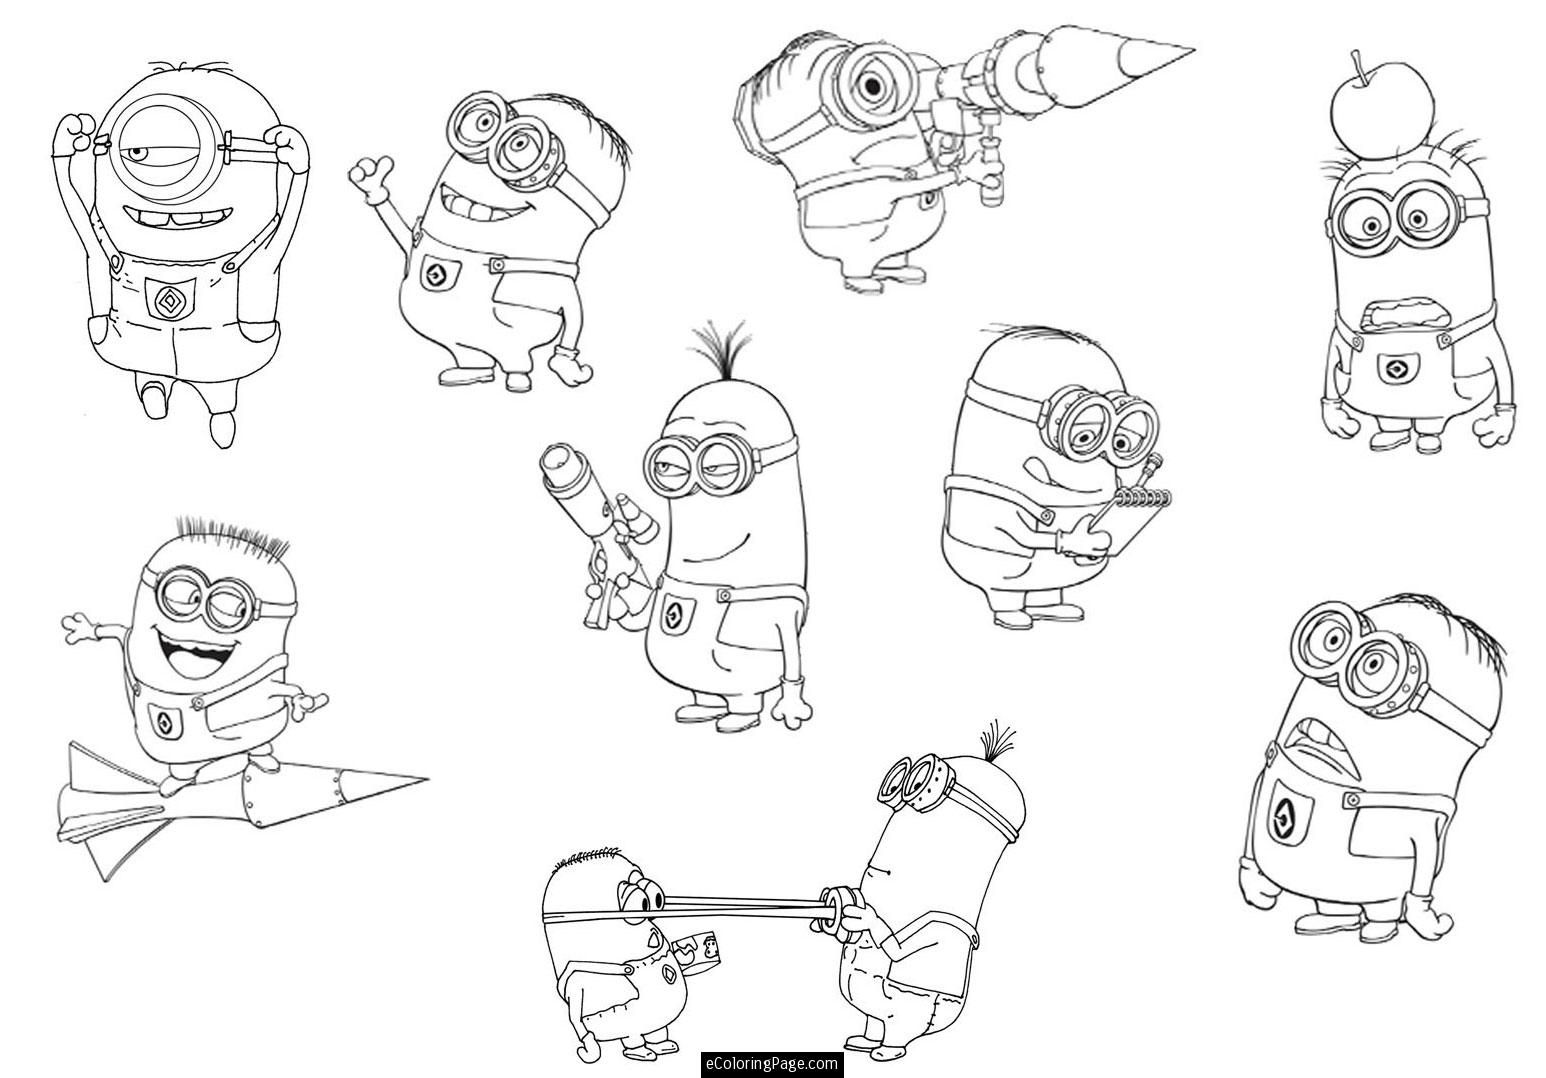 Despicable Me 2 Minions Coloring Pages Printable Minion Coloring Pages Minions Coloring Pages Cartoon Coloring Pages